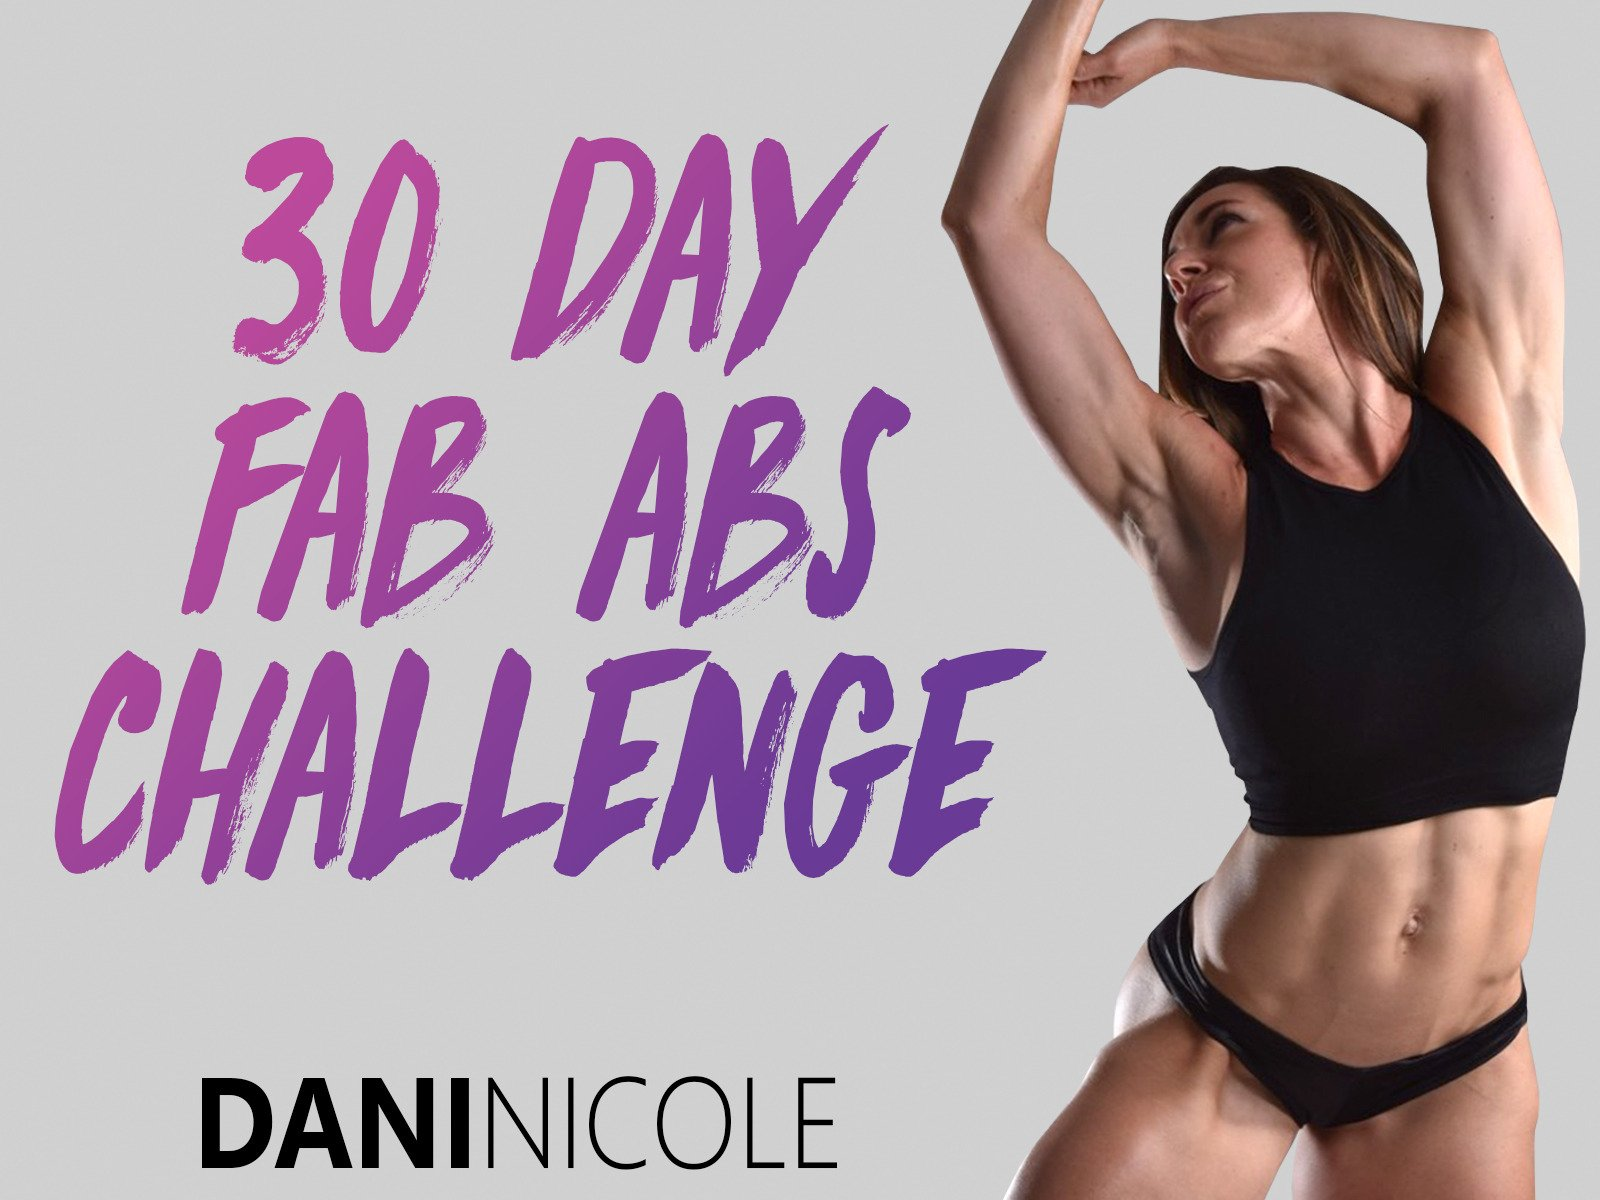 30 Fab Abs Challenge